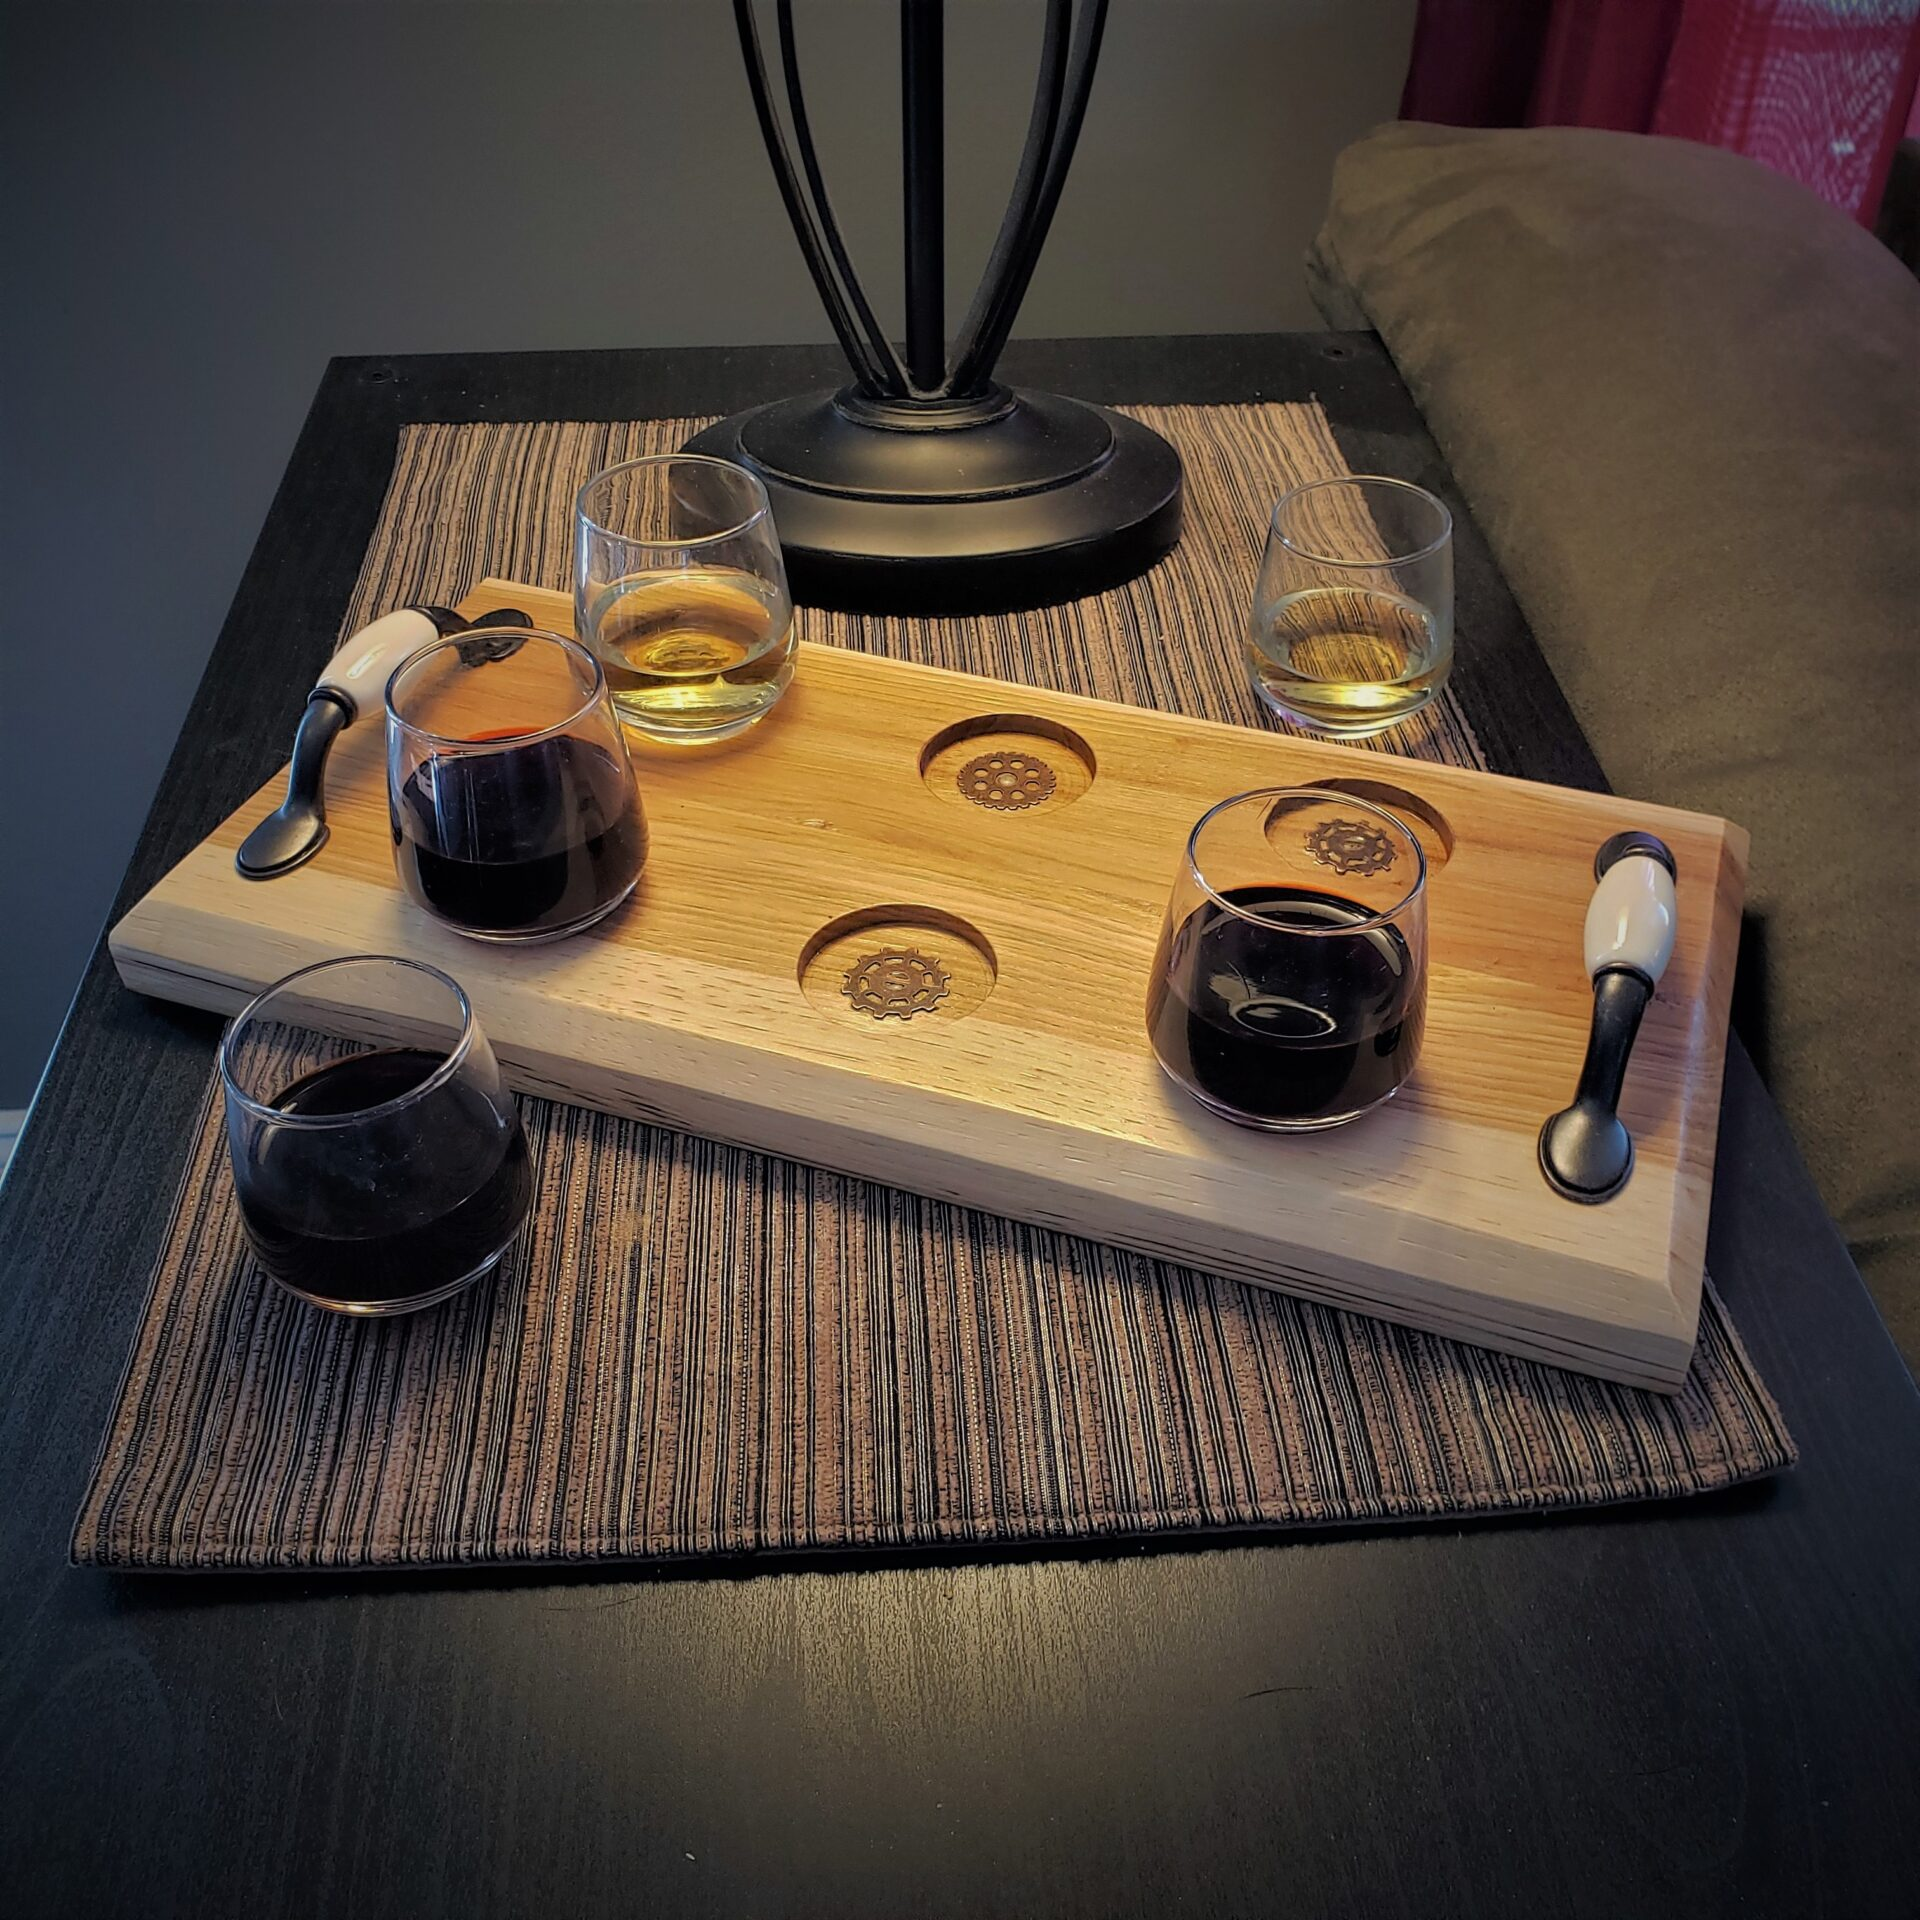 Tasting Tray with Steampunk Accents